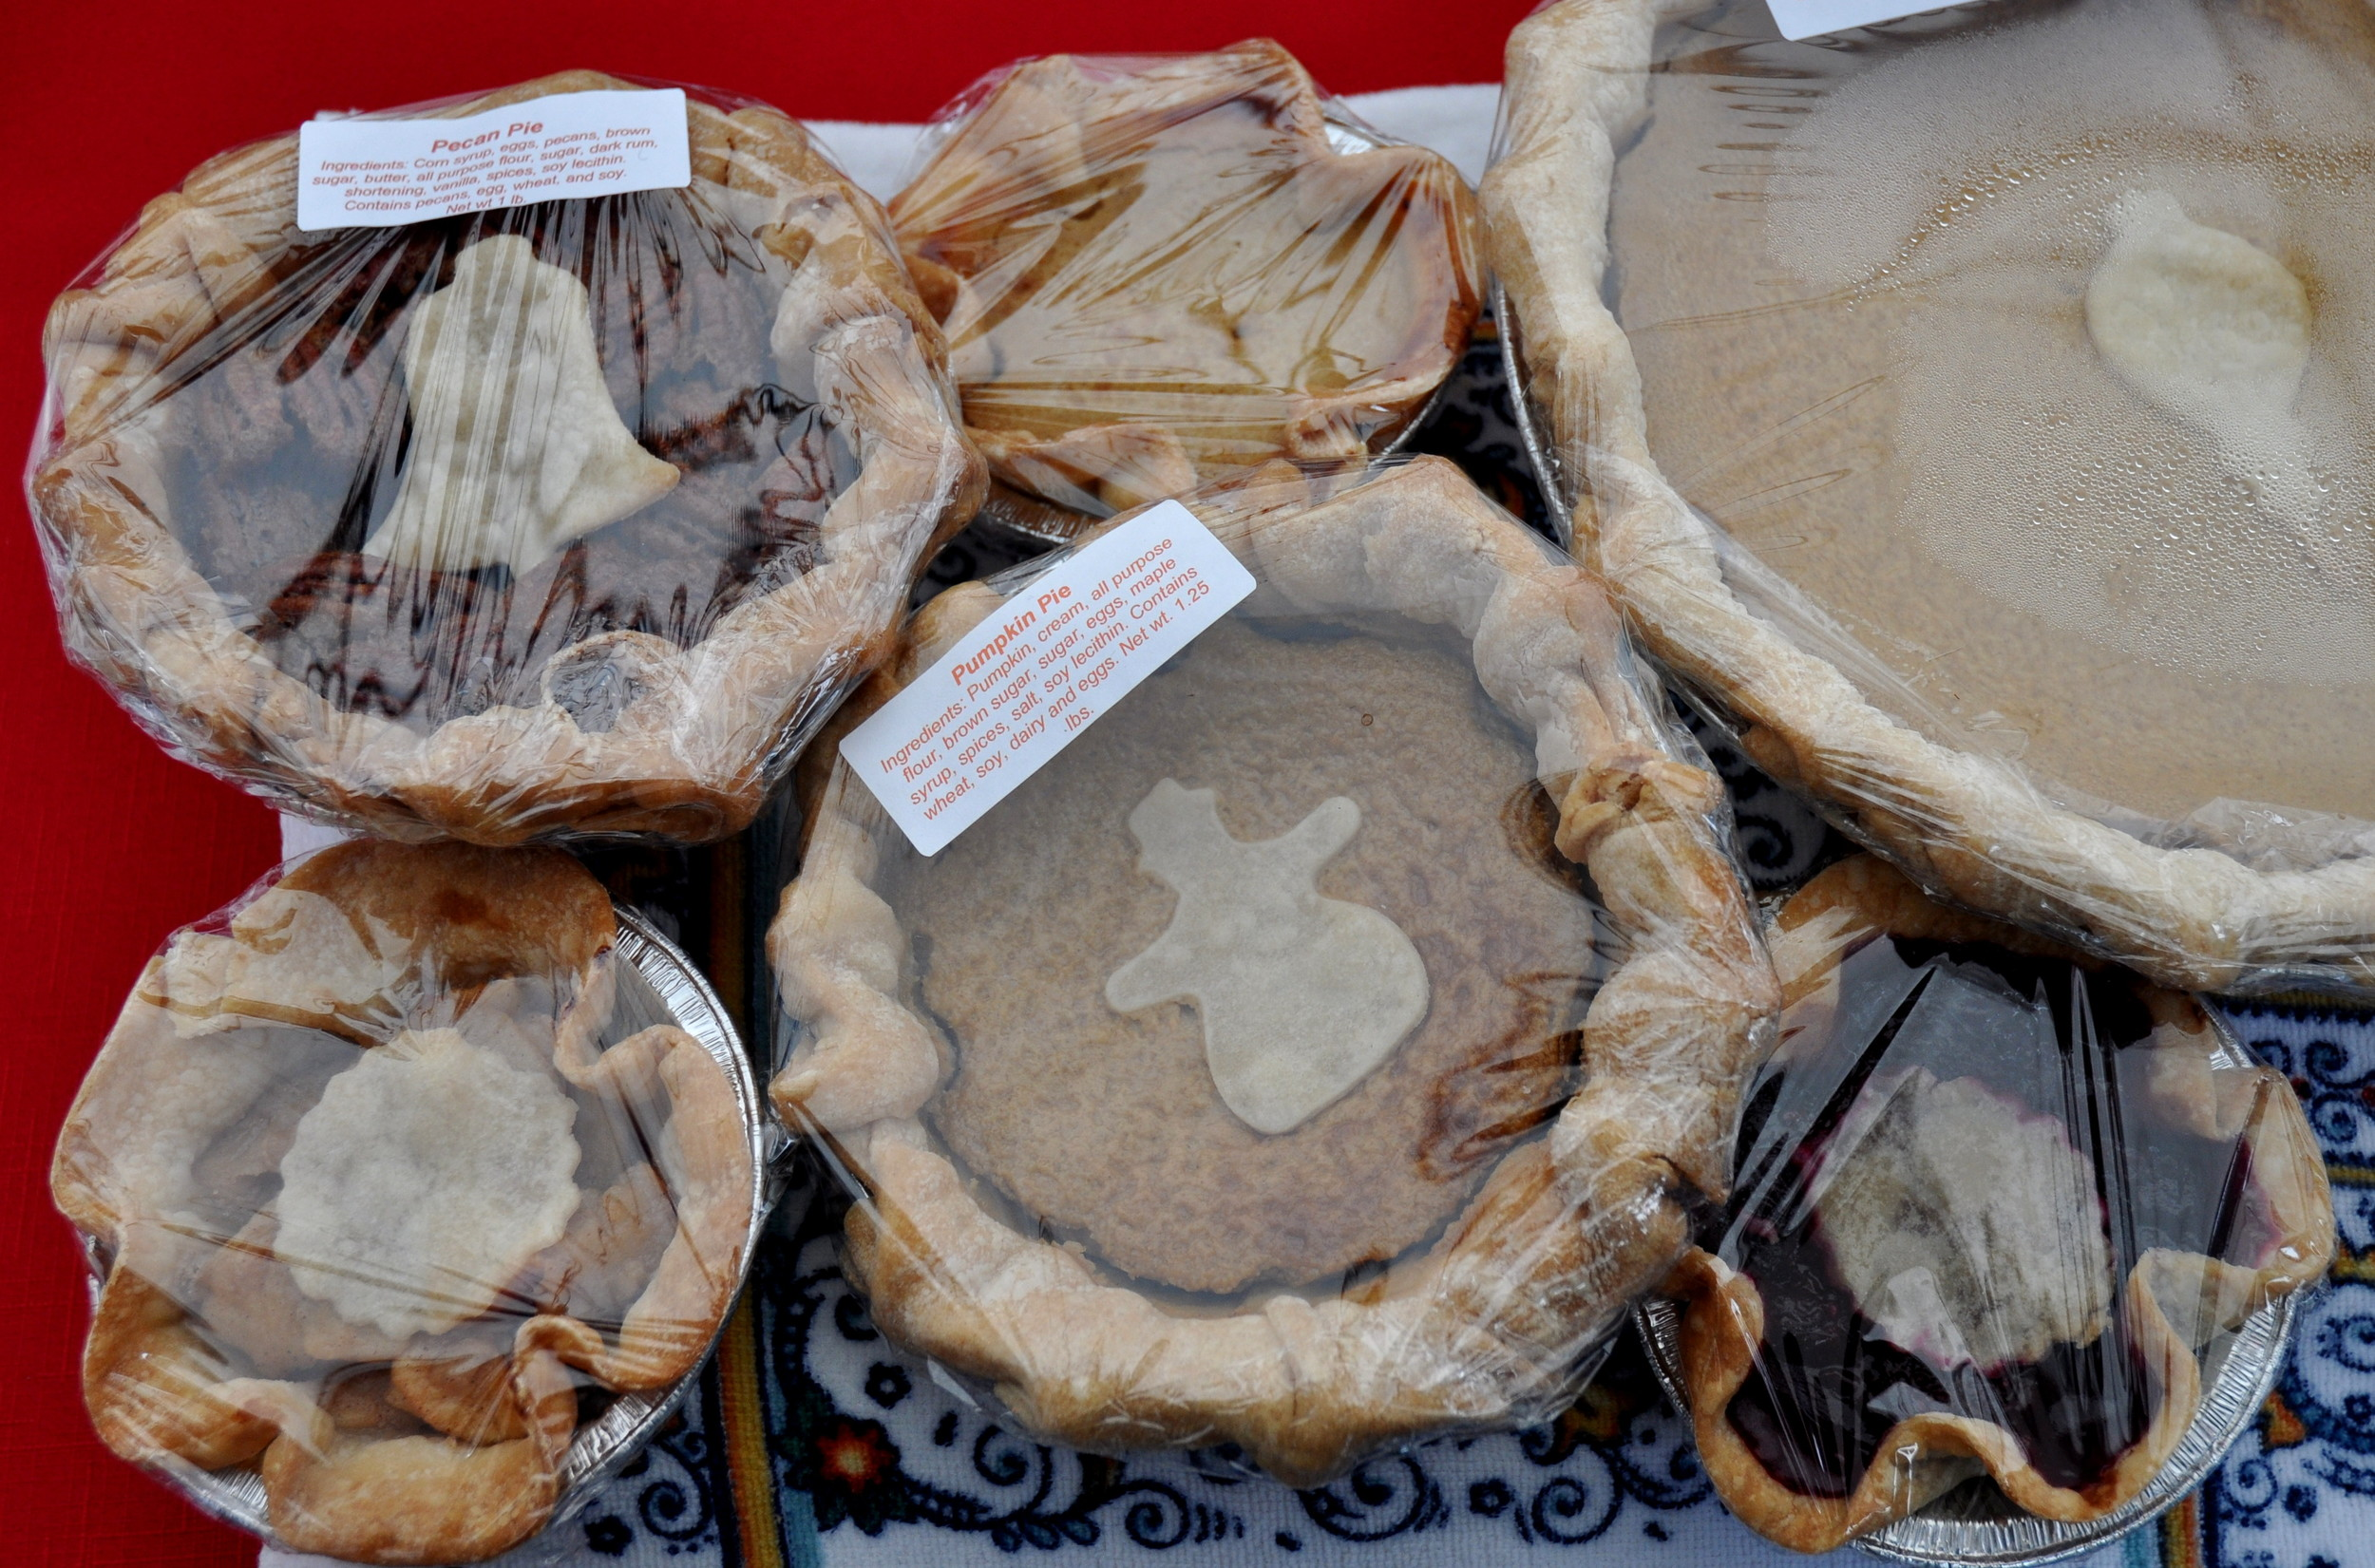 Holiday pies from Deborah's Homemade Pies. Photo copyright 2012 by Zachary D. Lyons.